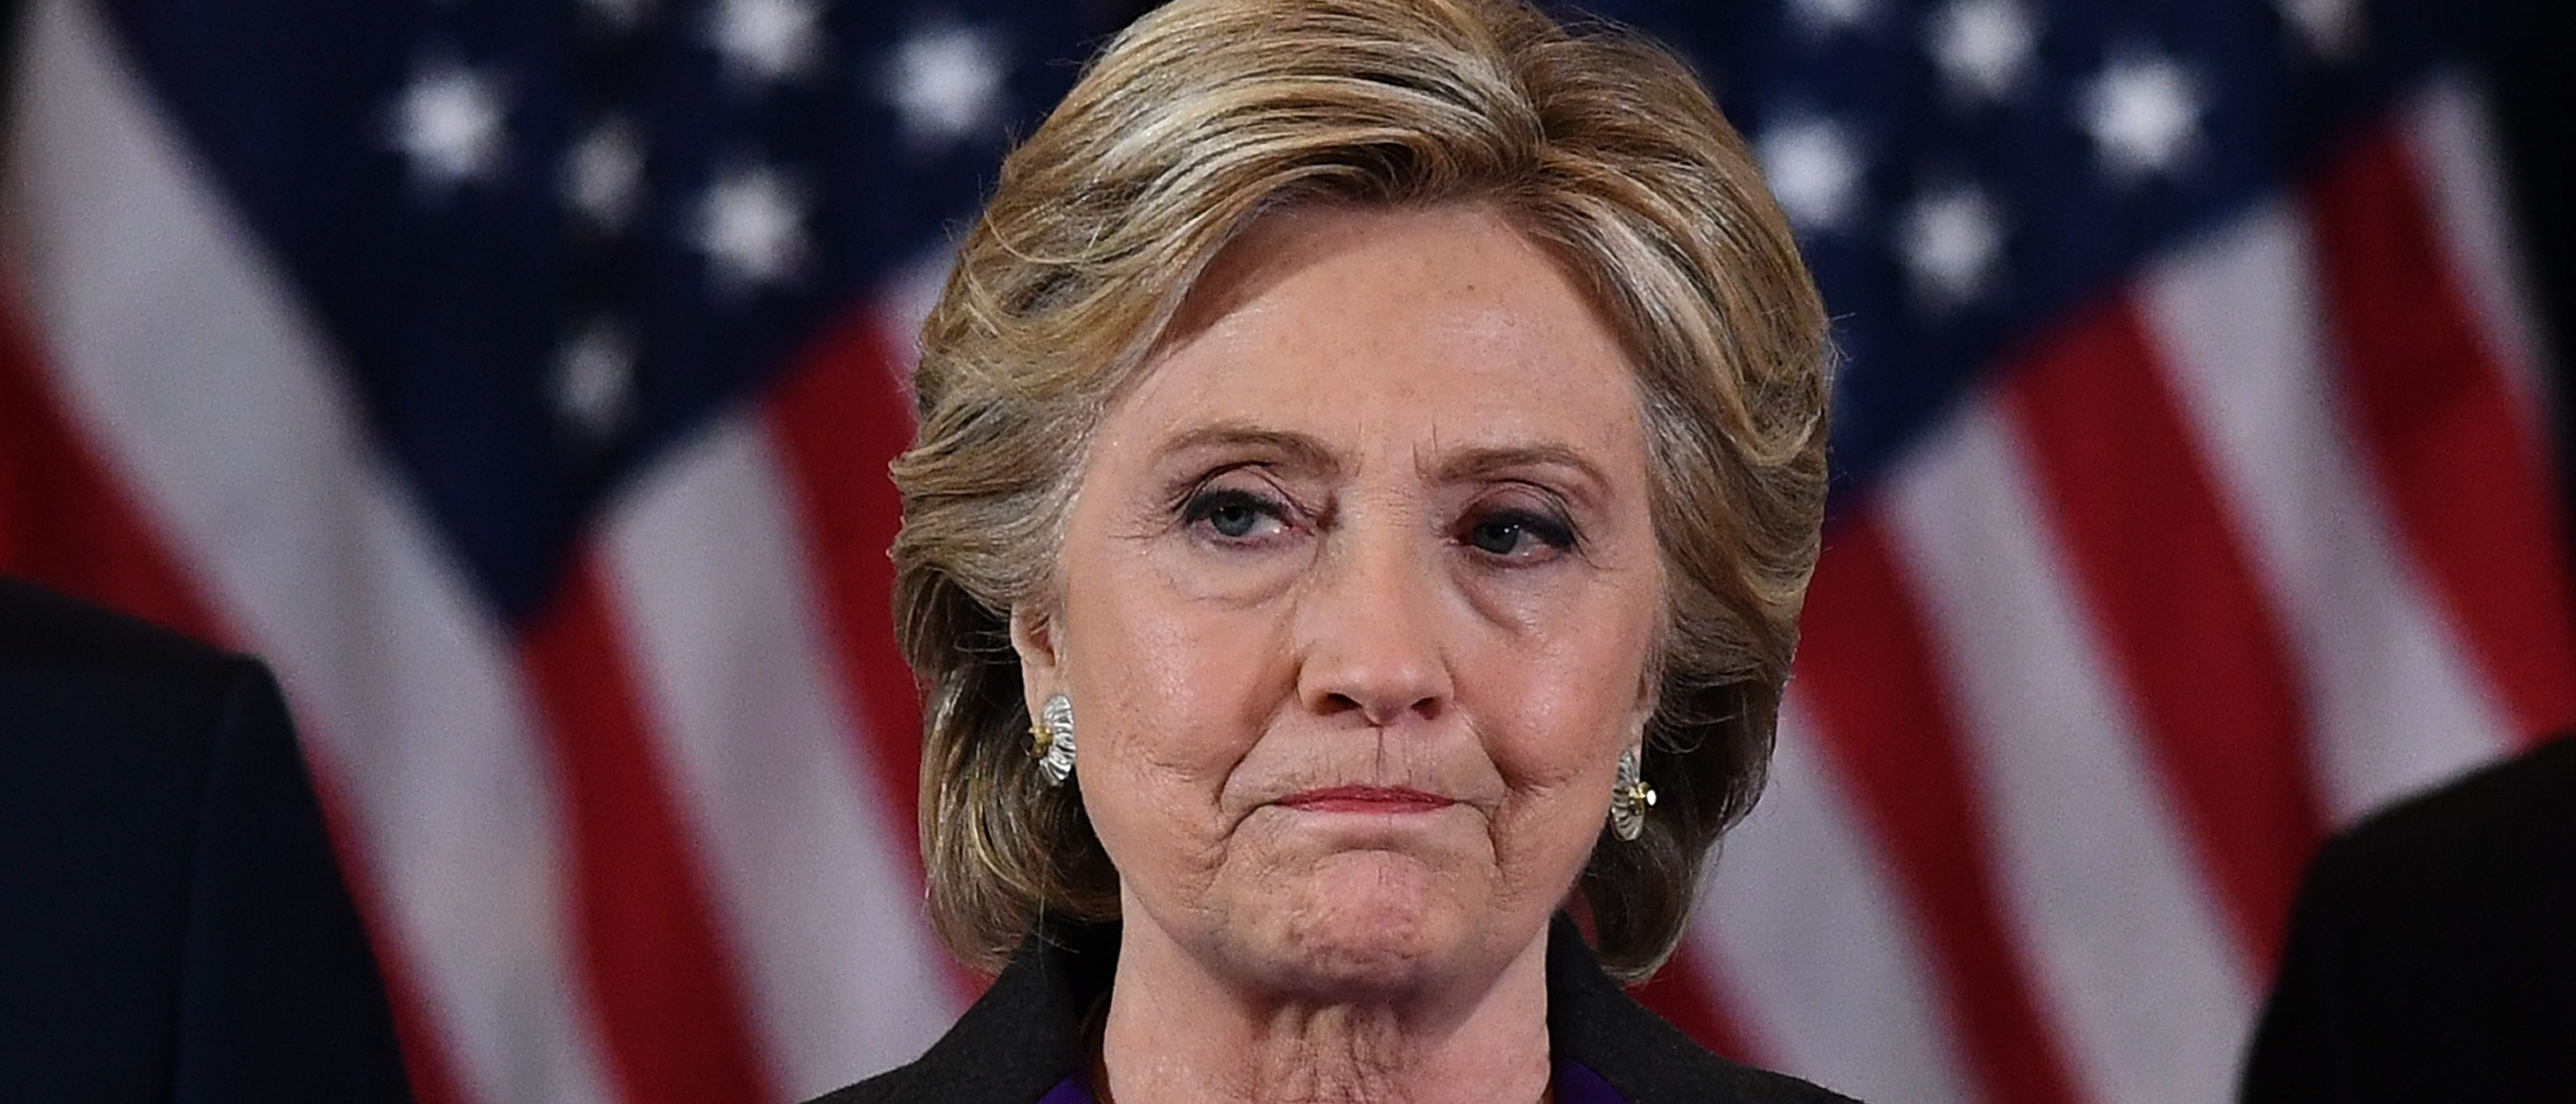 TOPSHOT - US Democratic presidential candidate Hillary Clinton makes a concession speech after being defeated by Republican president-elect Donald Trump in New York on November 9, 2016. / AFP PHOTO / JEWEL SAMAD (Photo credit should read JEWEL SAMAD/AFP/Getty Images)